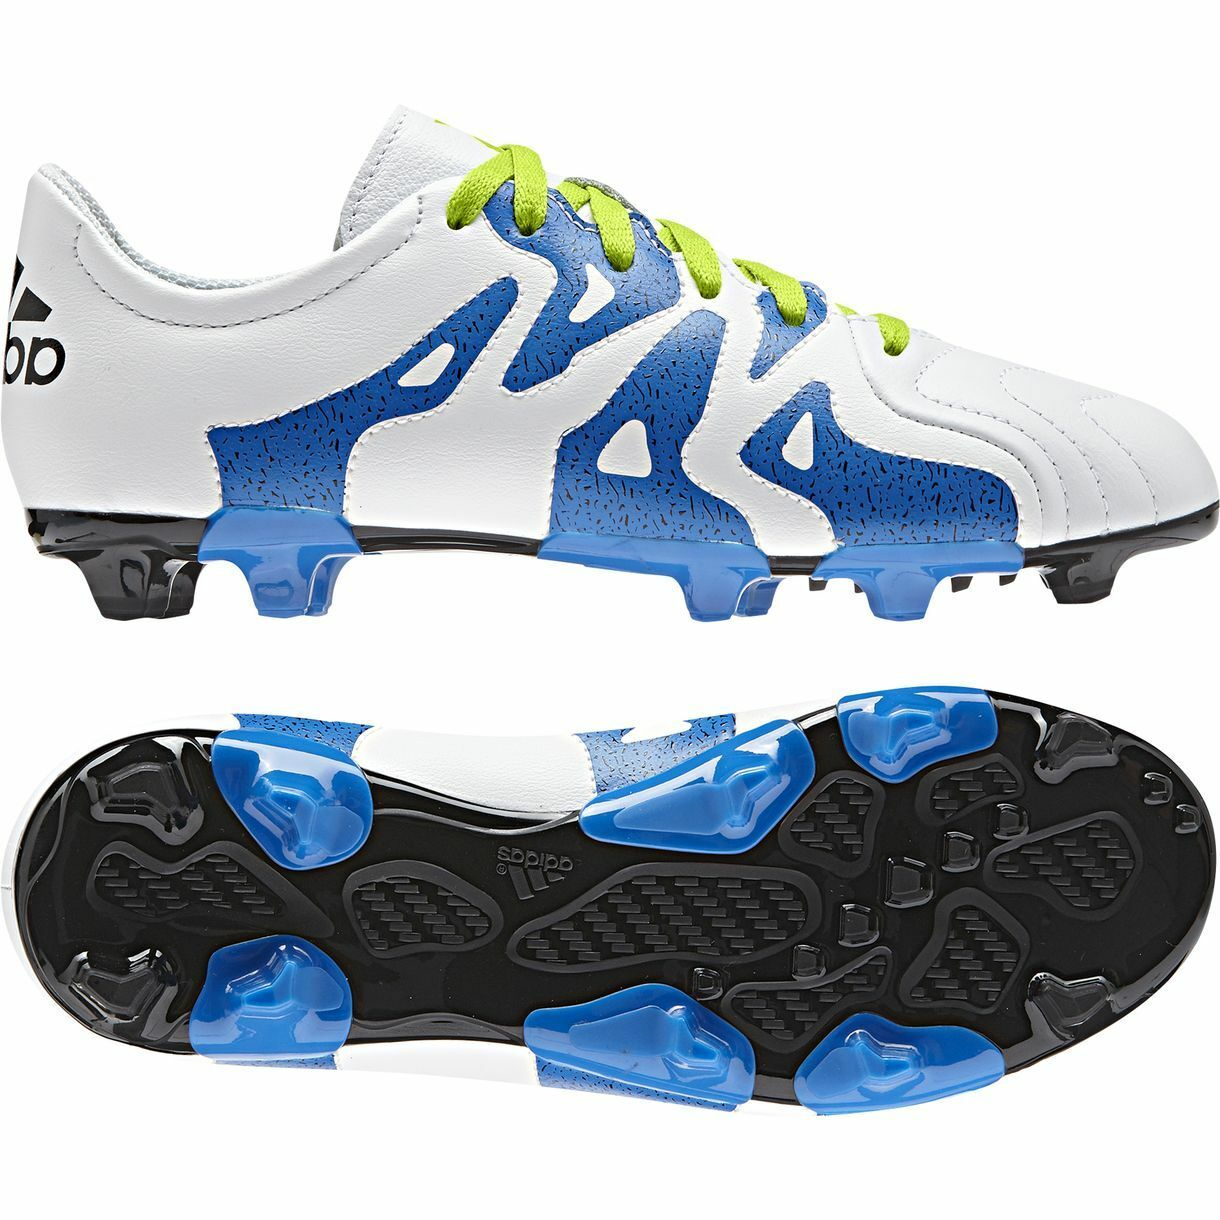 Adidas X 15.3 TRX FG   AG 2015 Soccer shoes Cleats New White   Slime Kids Youth